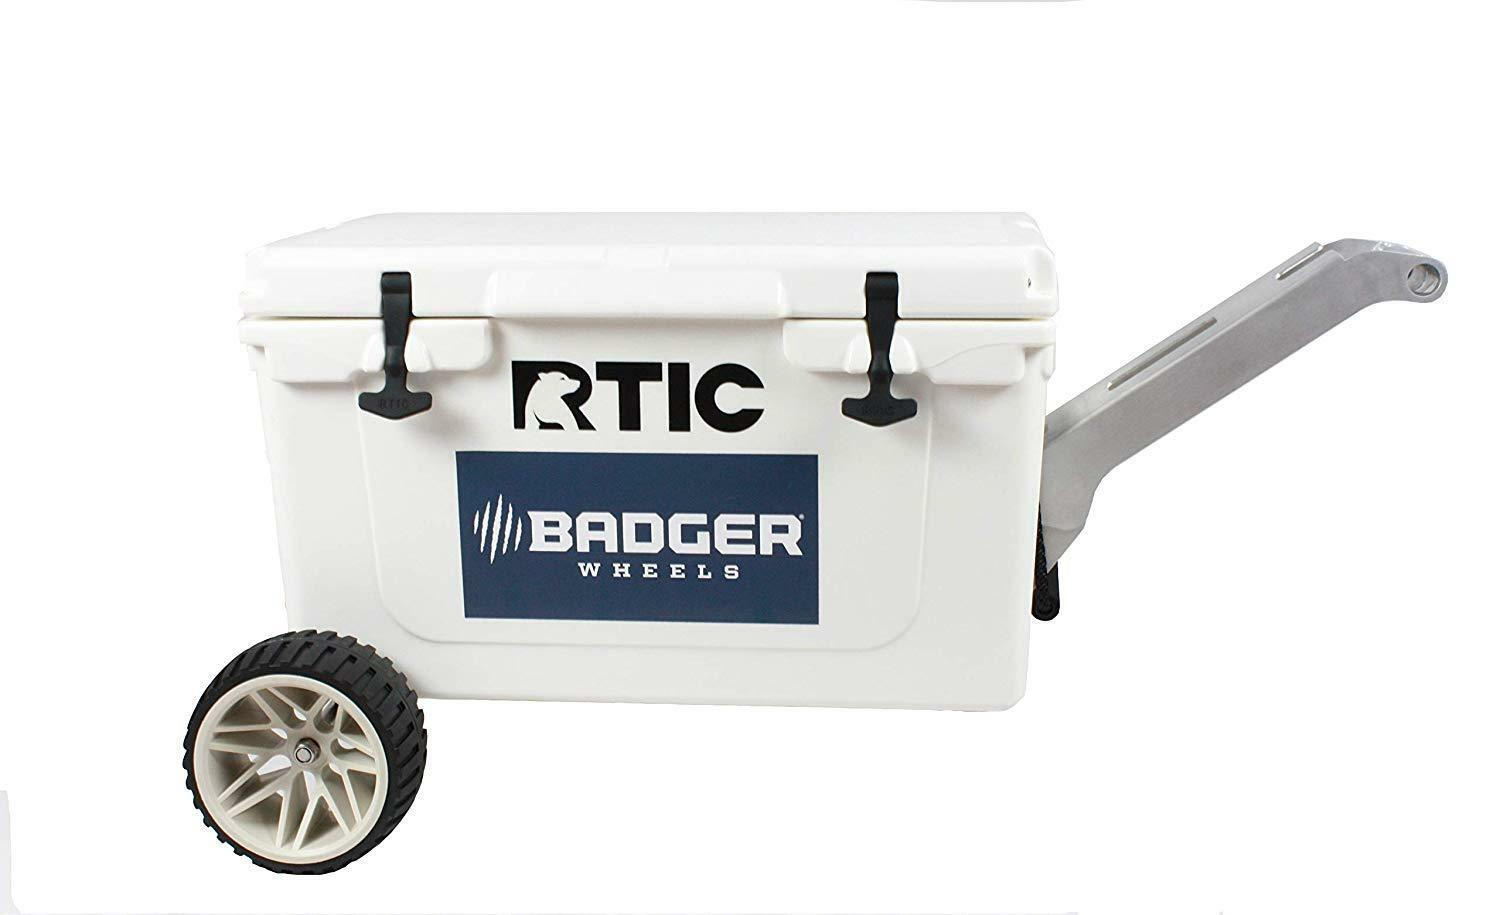 Badger Wheels RTIC Large  Wheel Kit - Single Axle + Handle Stand  RTIC 45 and 65  everyday low prices